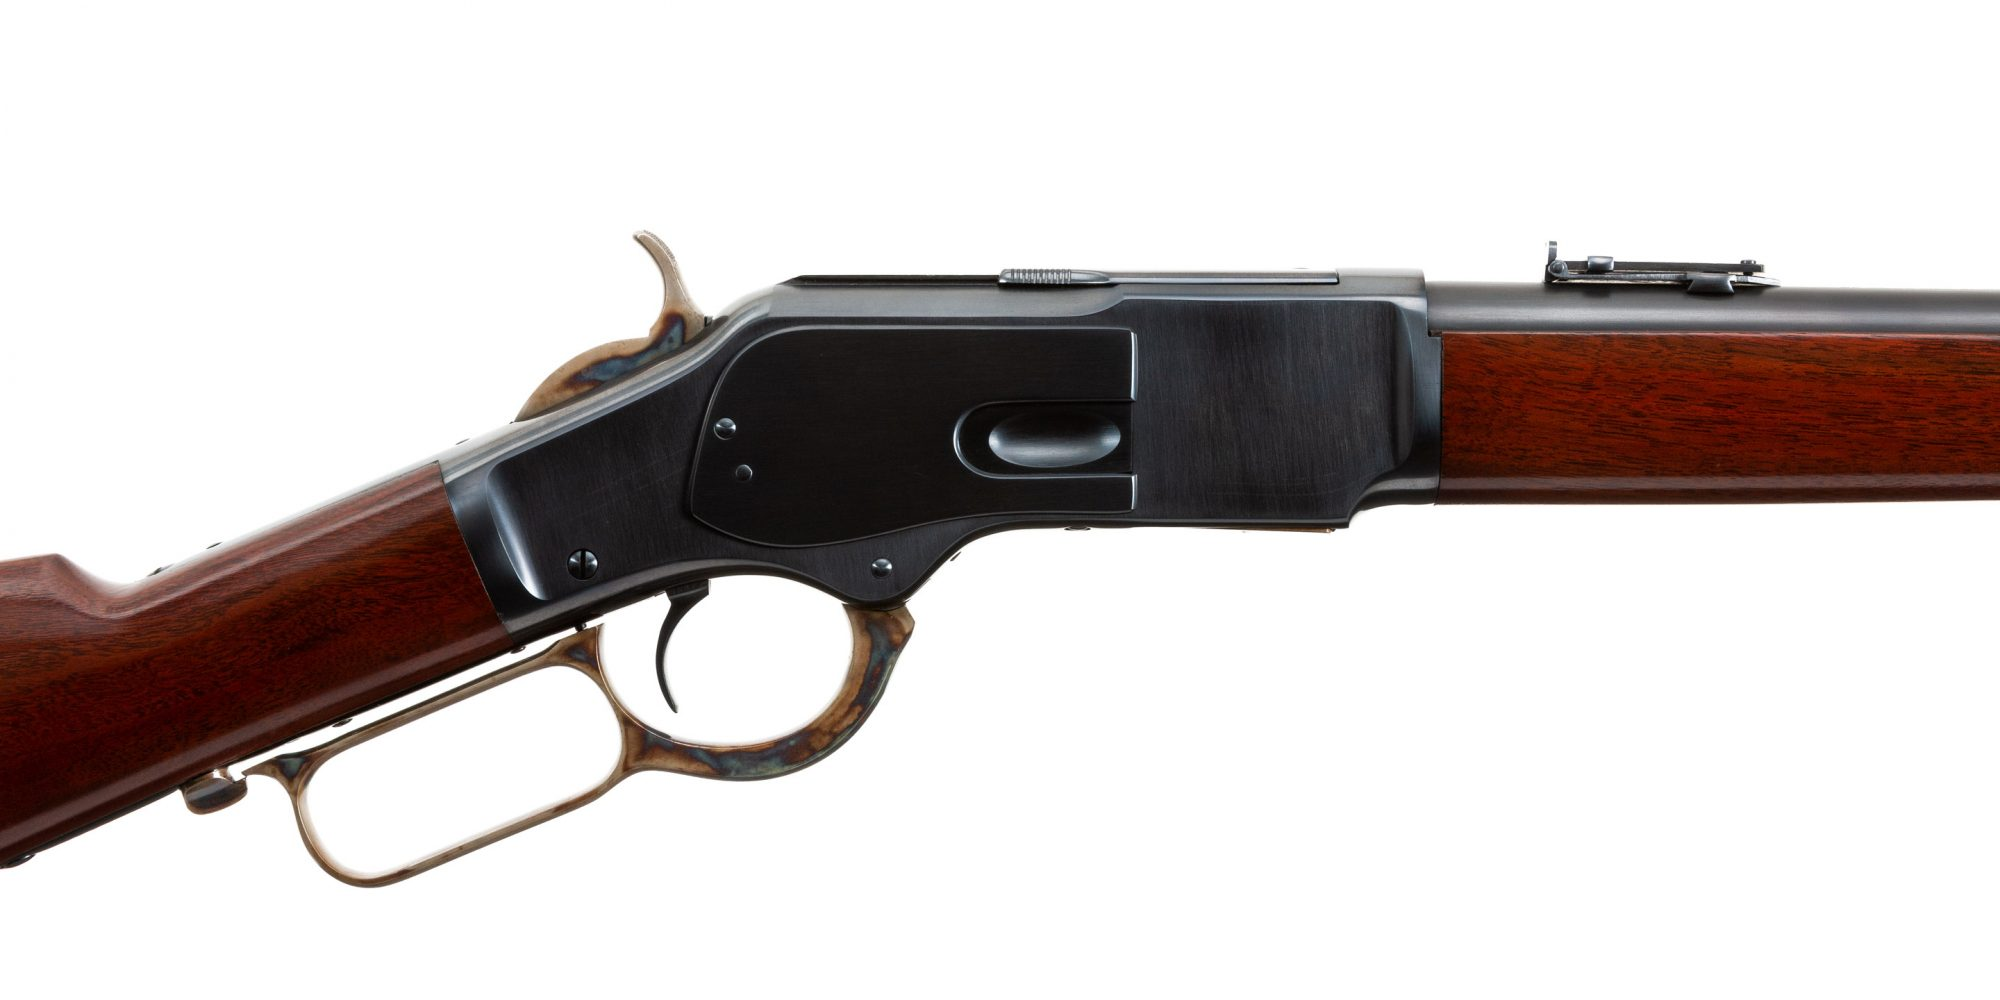 Photo of a Winchester Model 1873 from 1889, restored in 2015 and for sale by Turnbull Restoration